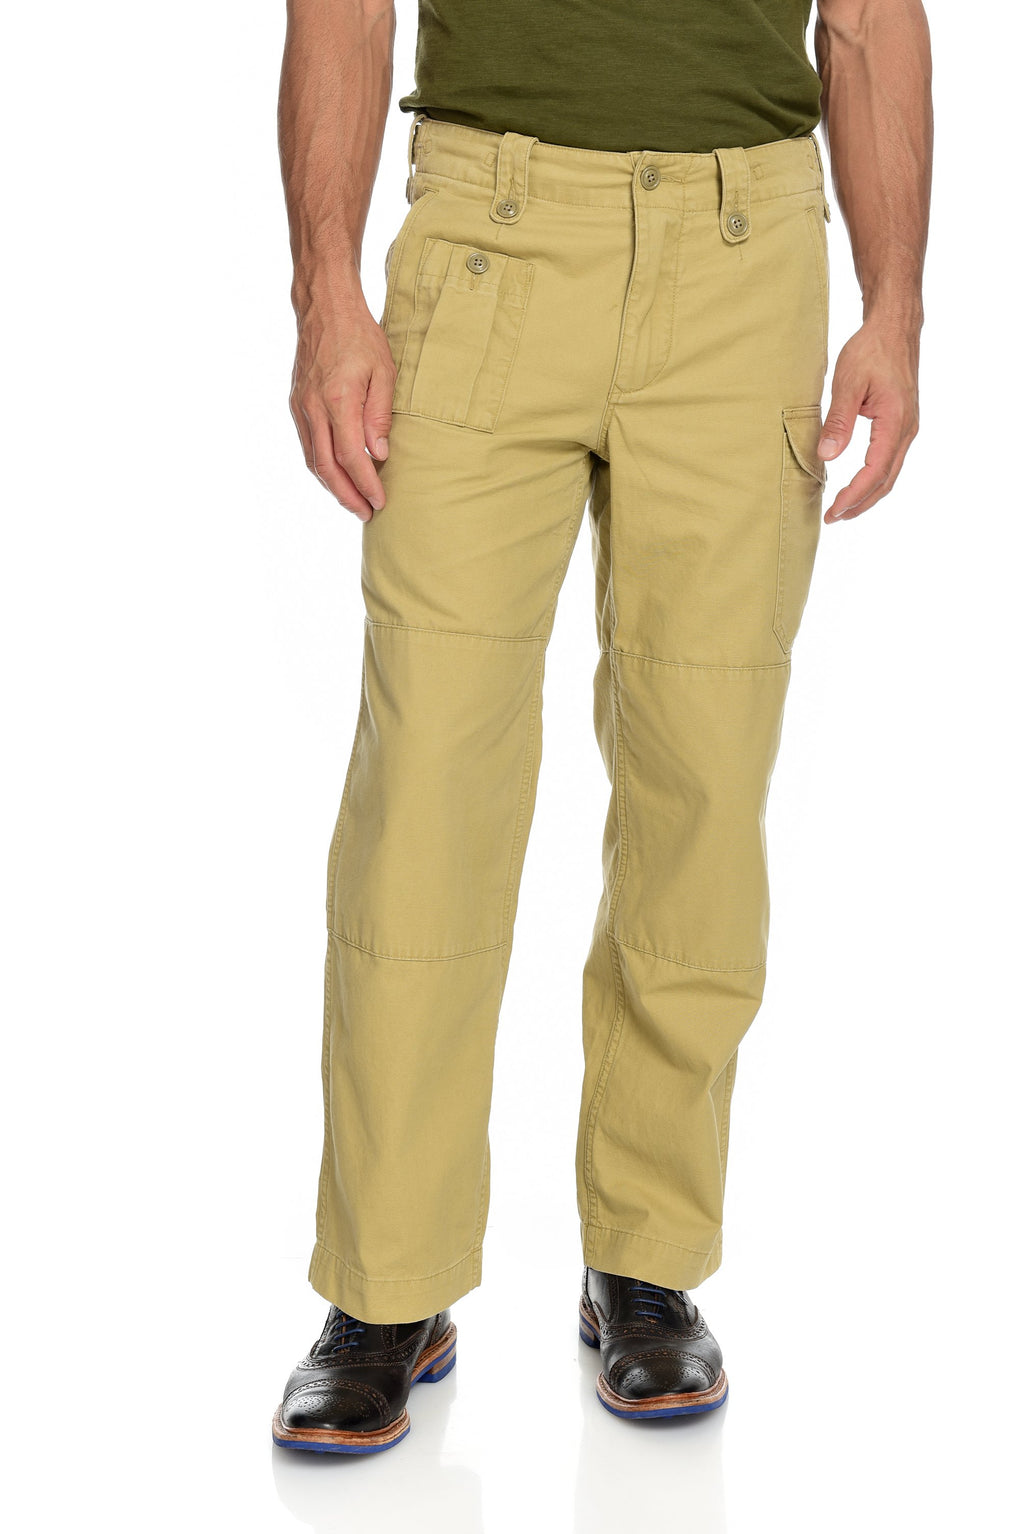 British Army Cargo Pants Mens